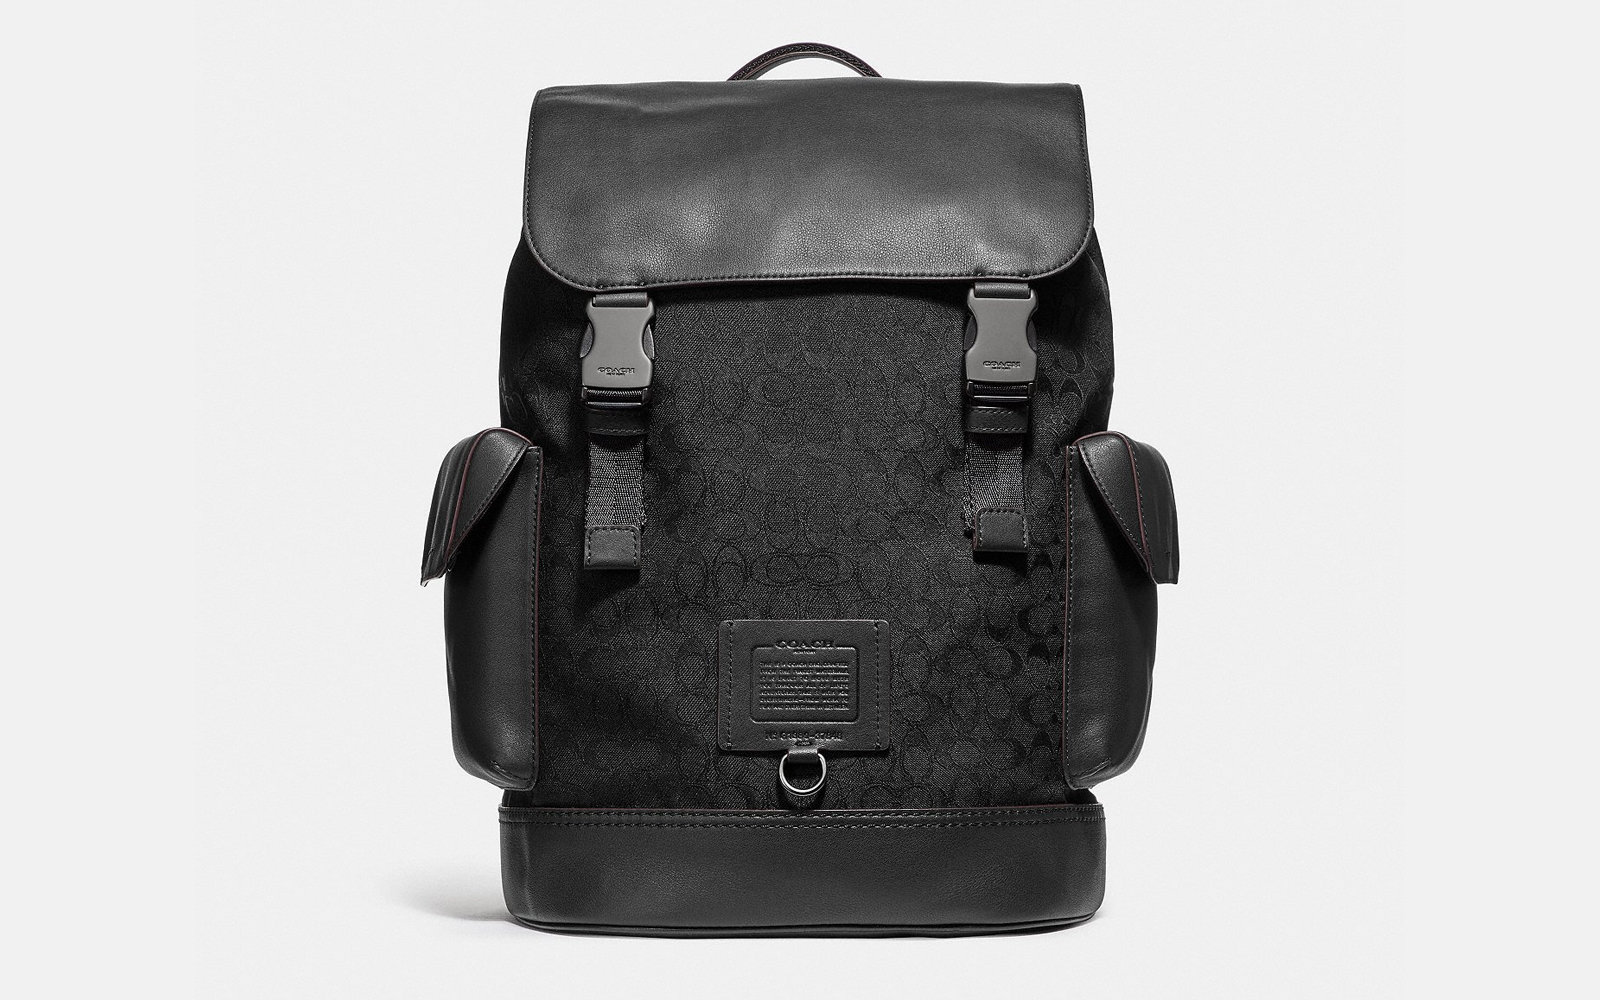 54b3da4cc46 The Best Luxury Backpacks